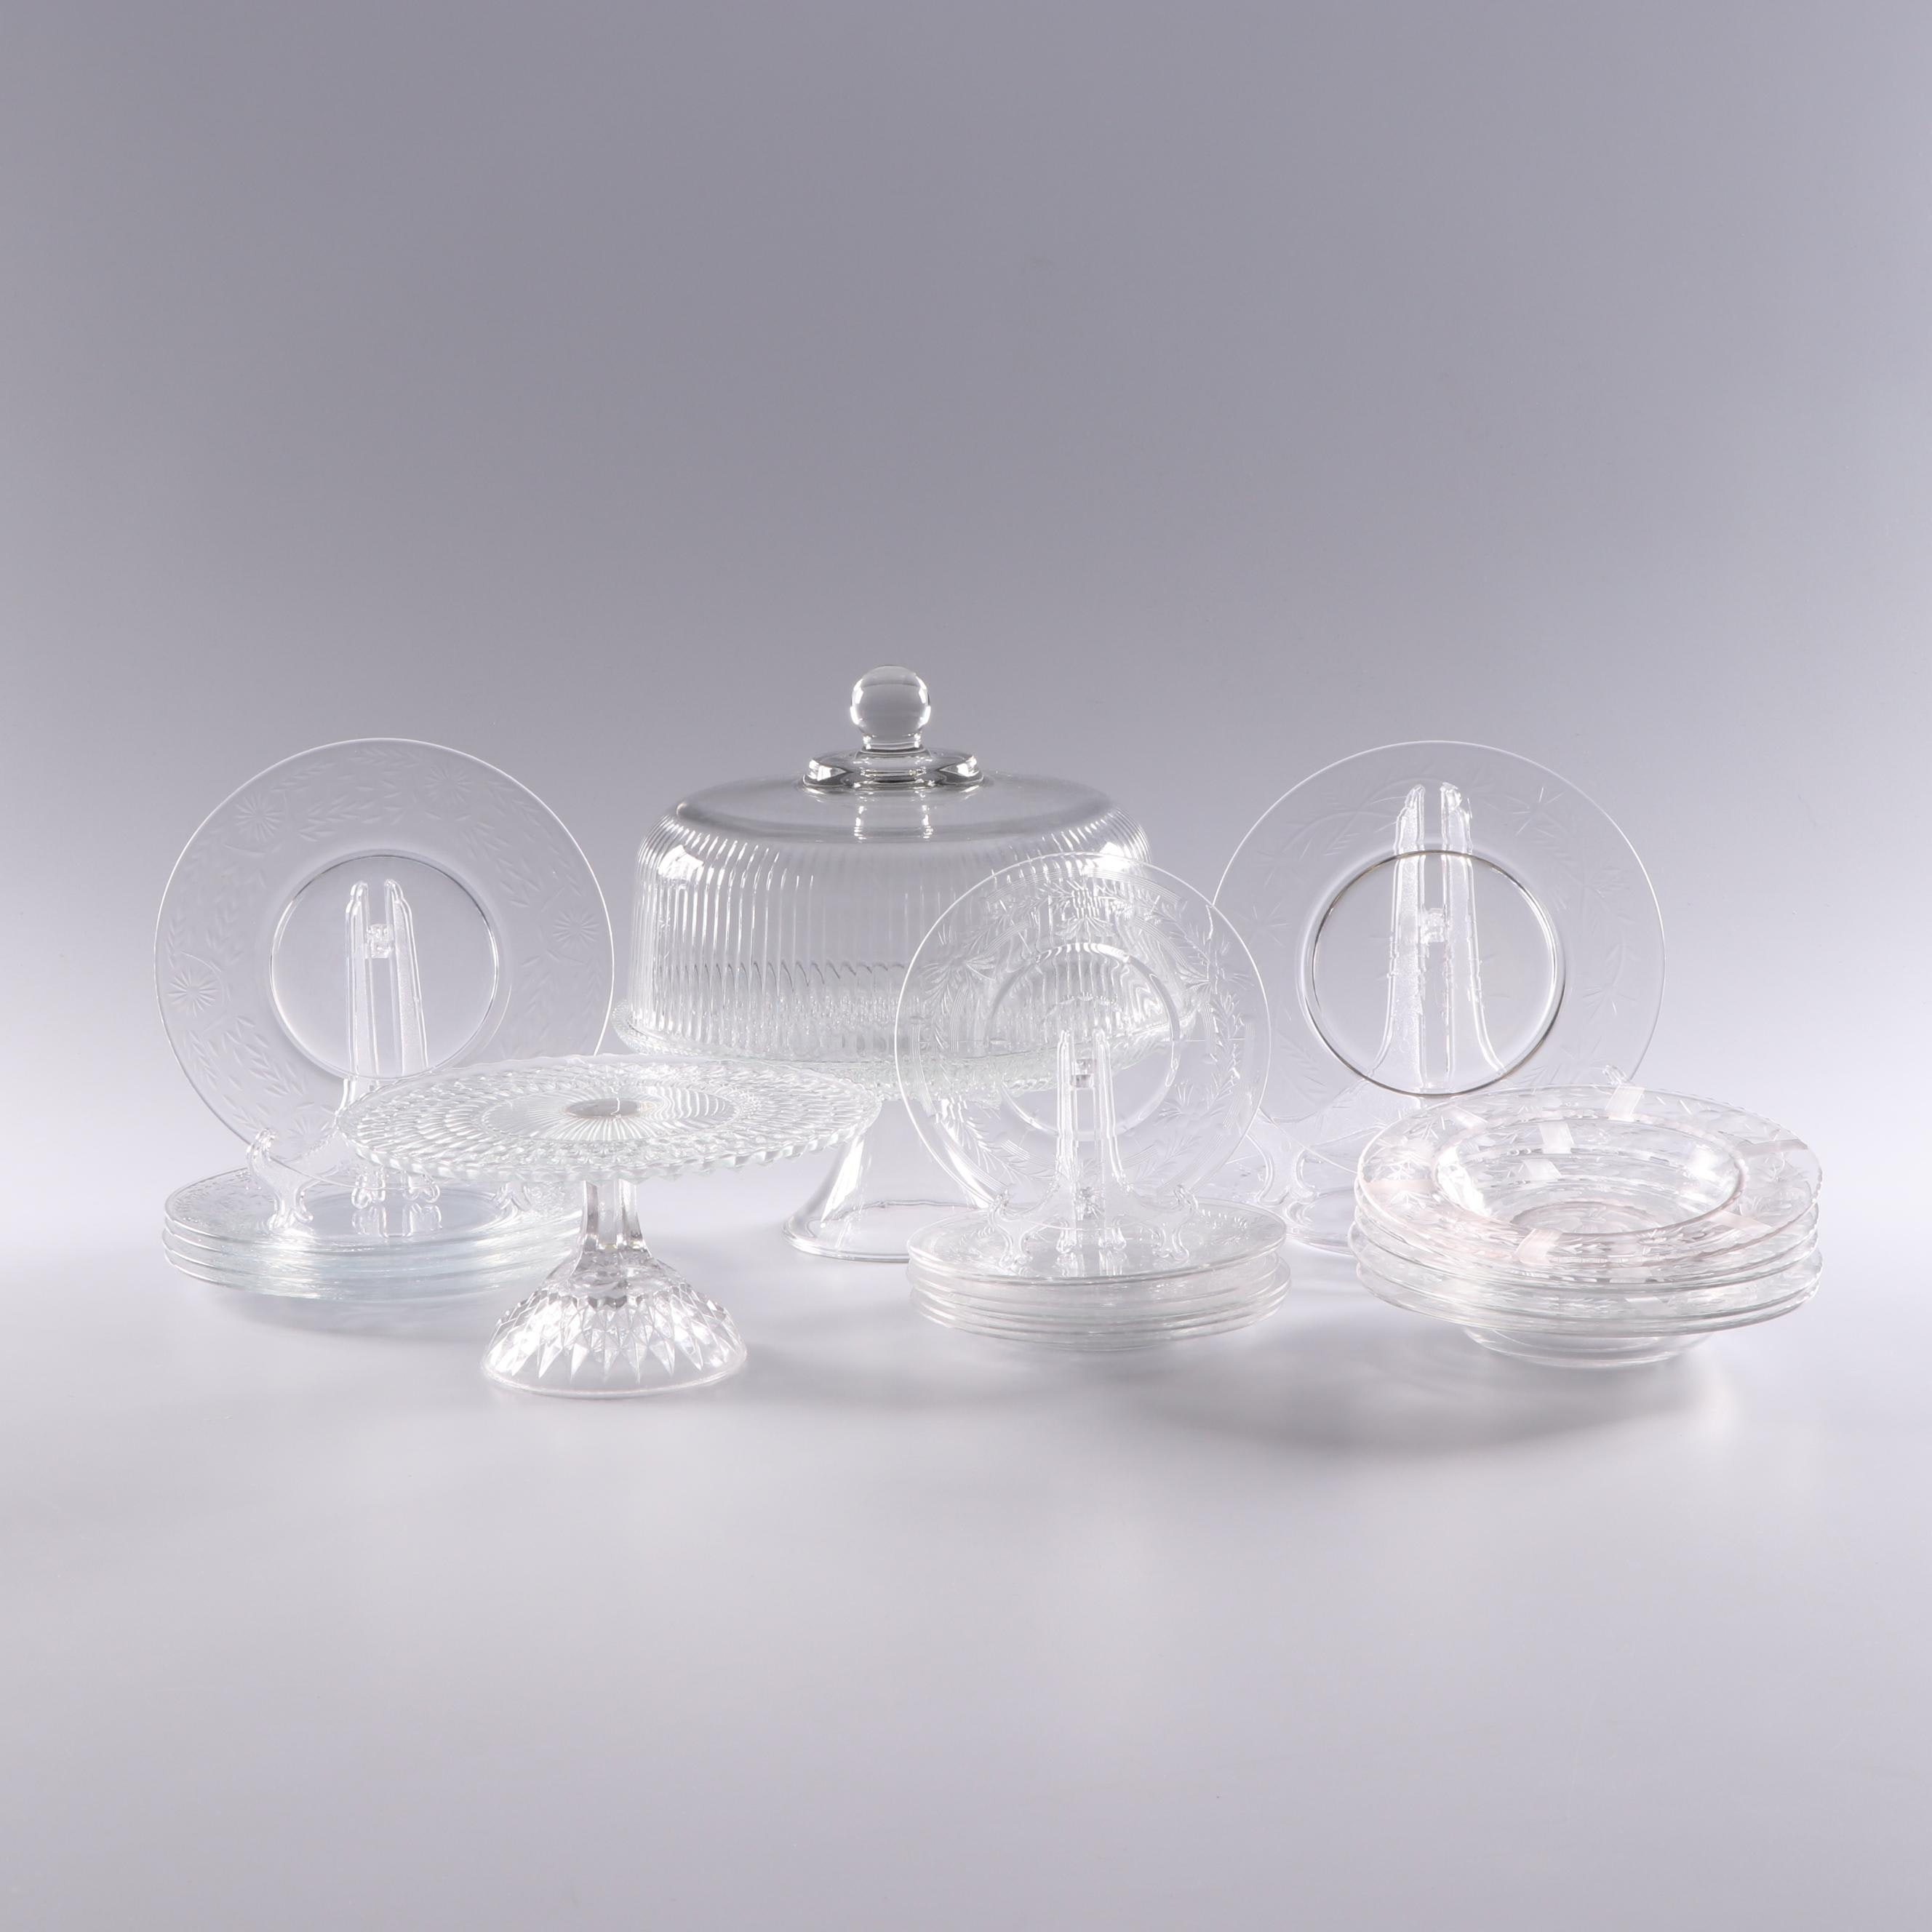 Depression Glass Cake Stands and Other Glass Dinnerware featuring Jeanette